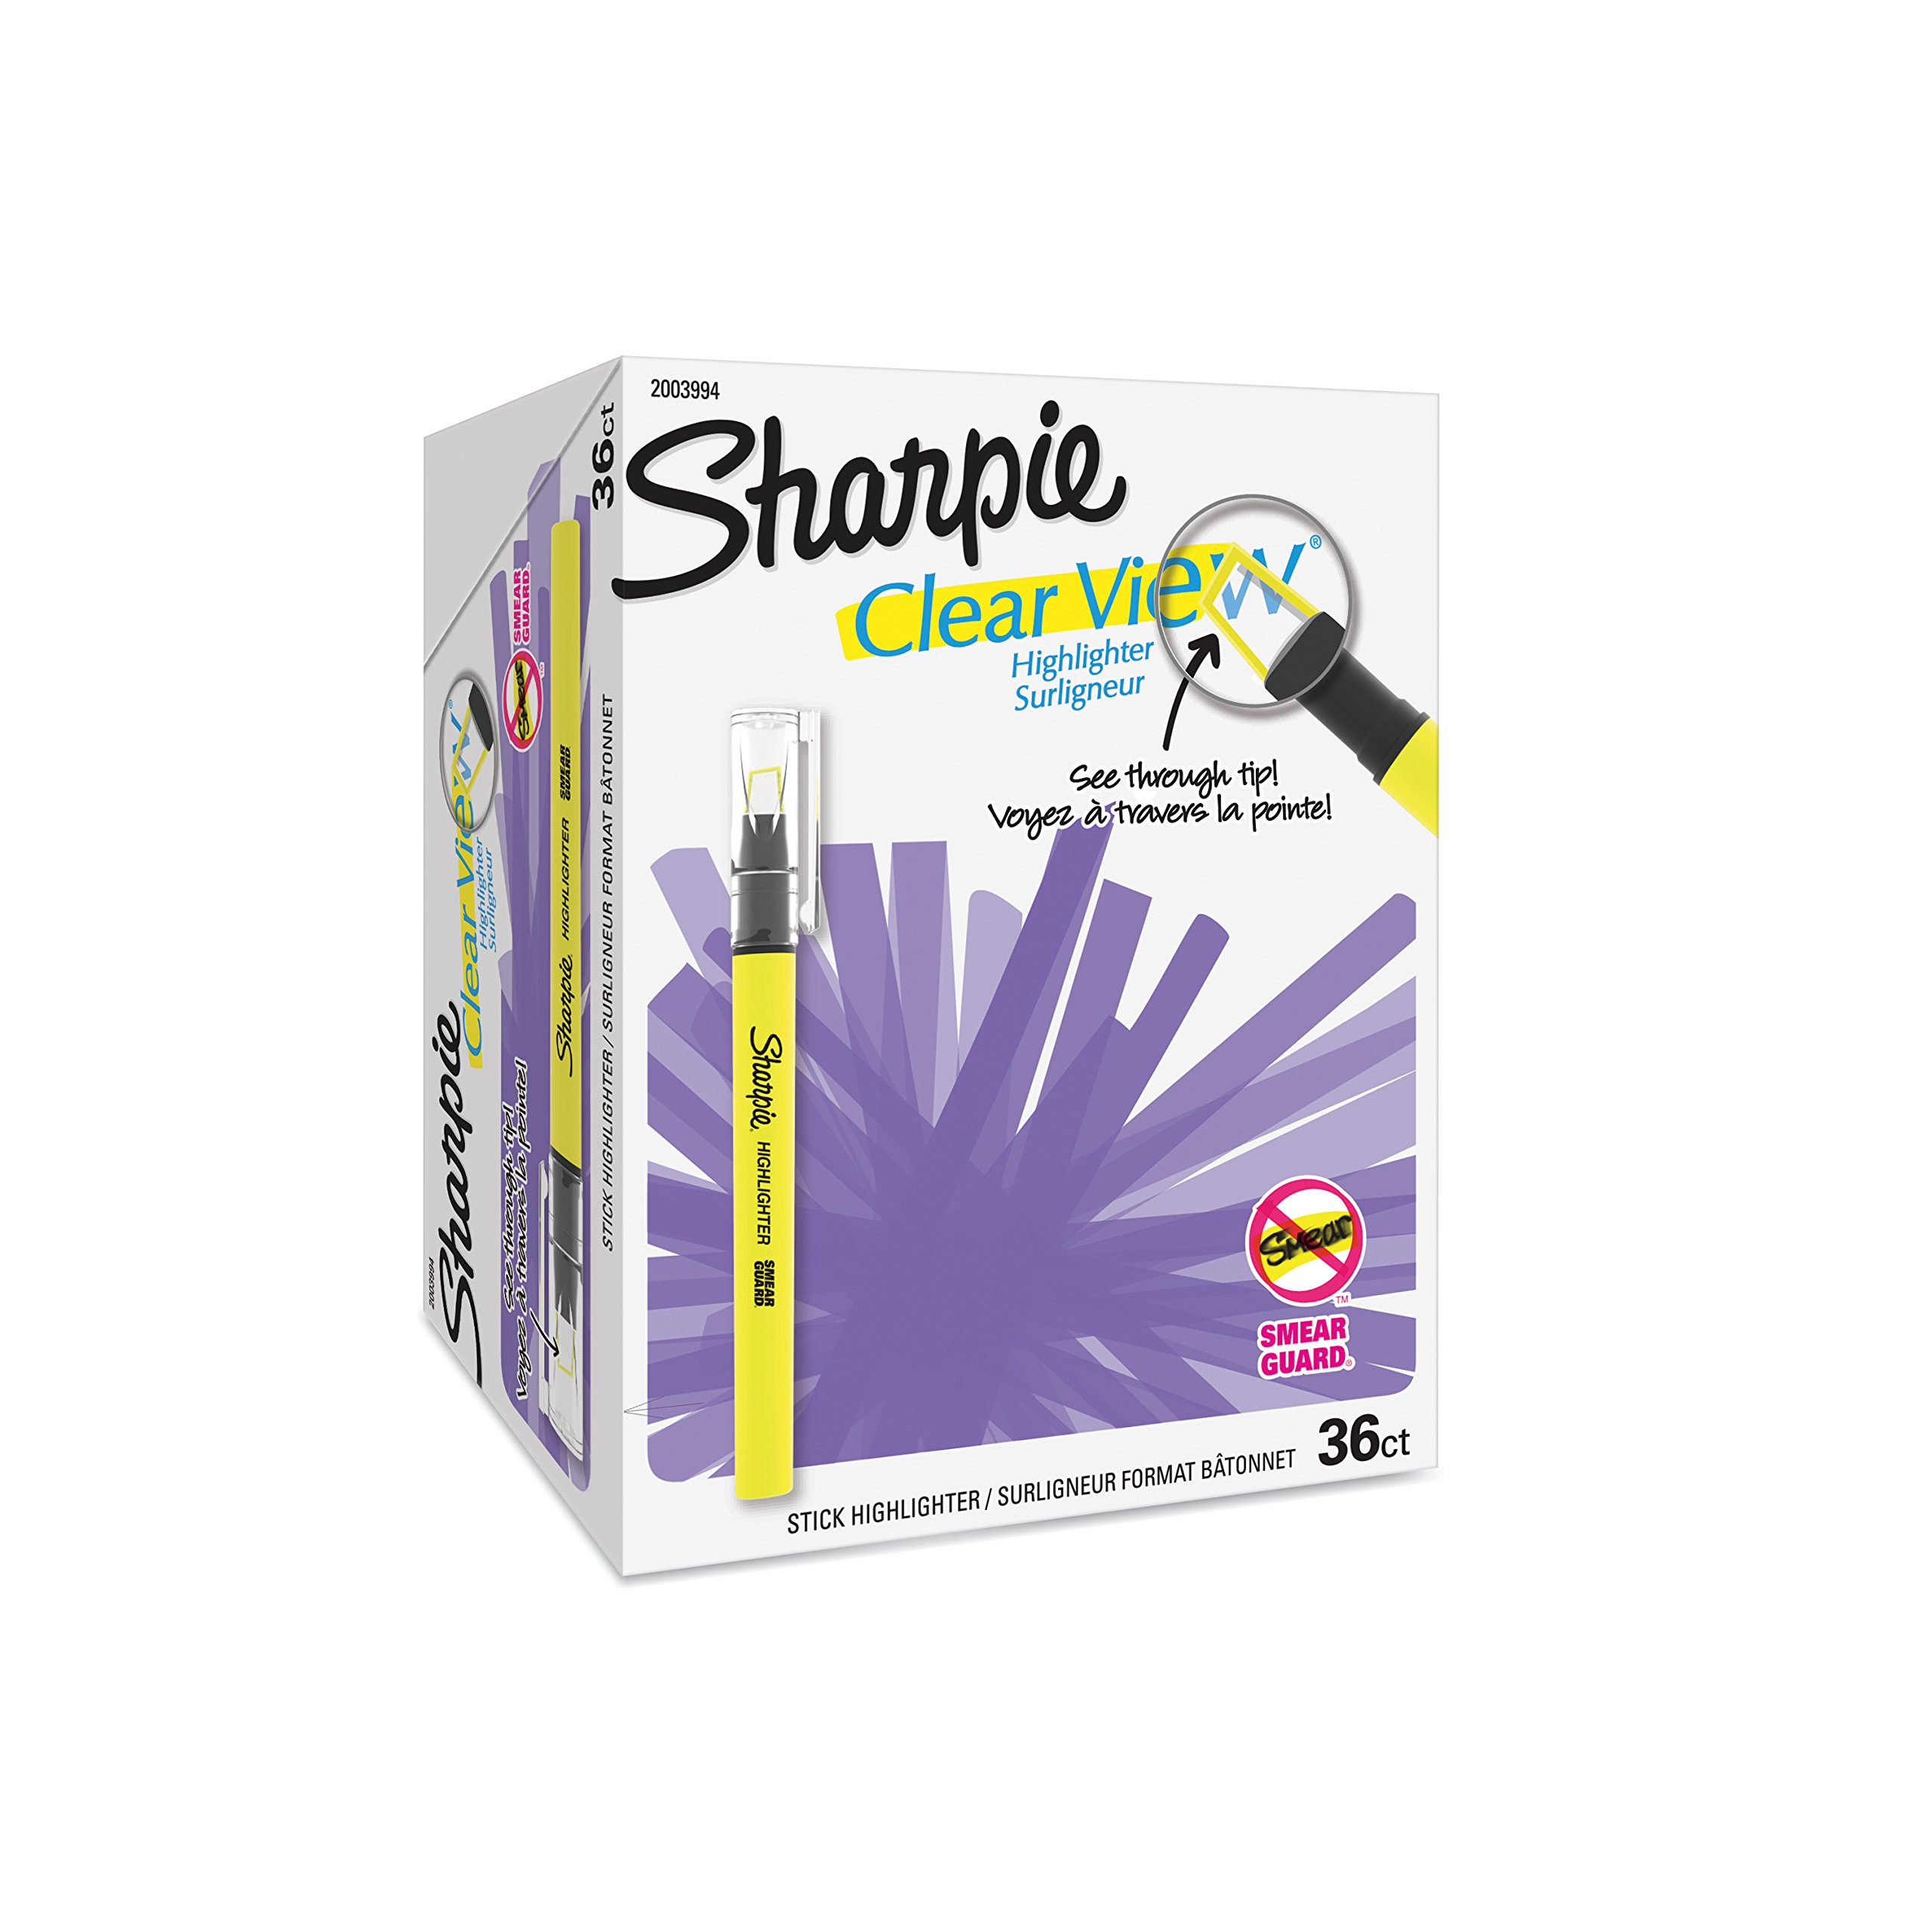 Sharpie Clear View Highlighter Stick, Chisel Tip, Assorted Fluorescent, 36 Count by Sharpie (Image #9)